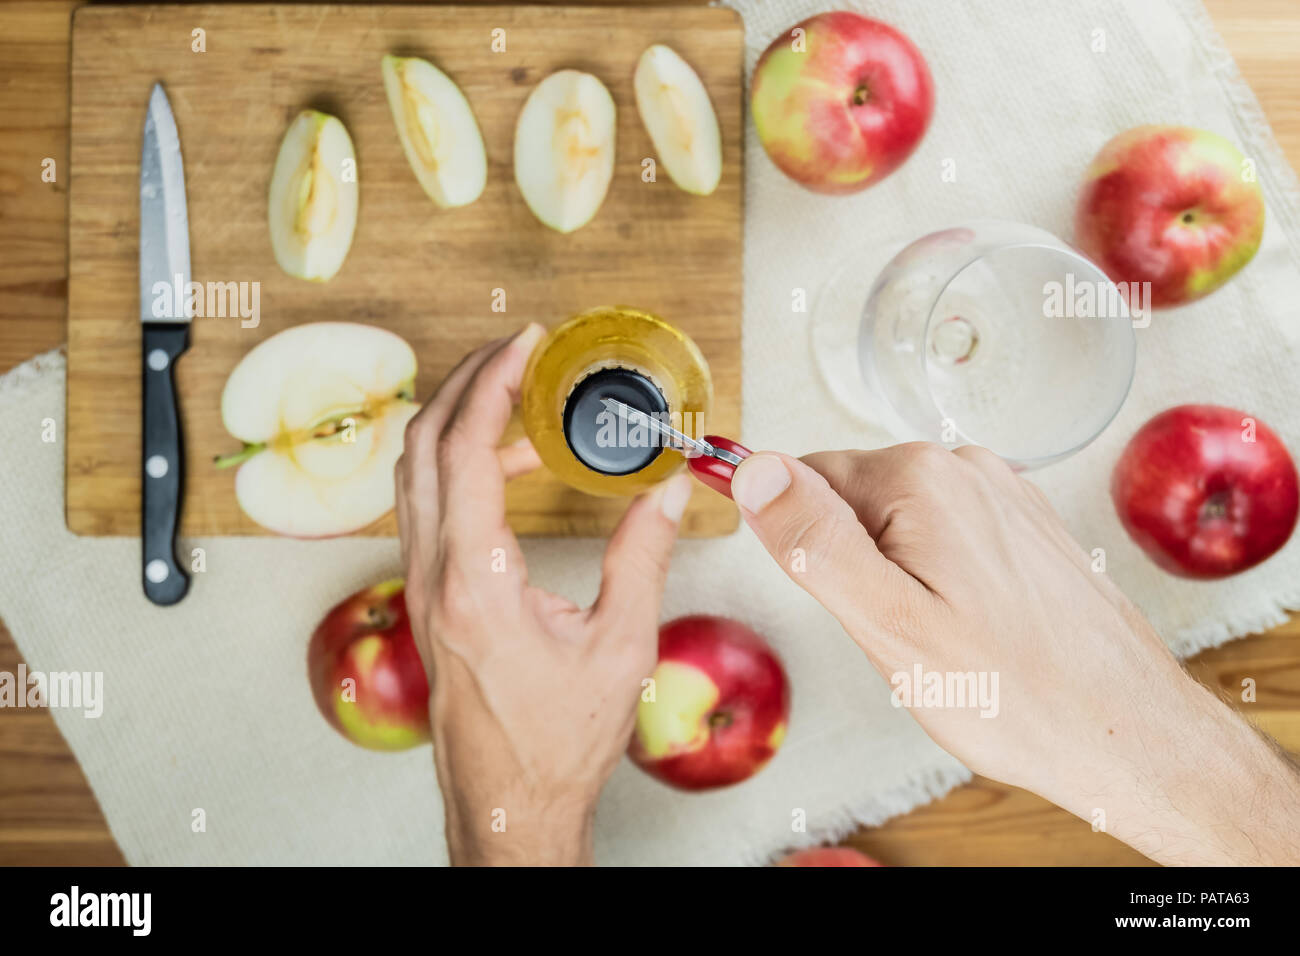 Opening bottle of apple cidre drink, top view. Point of view of hand with can opener, preparing a drink of cider on rustic wooden table with ripe appl Stock Photo